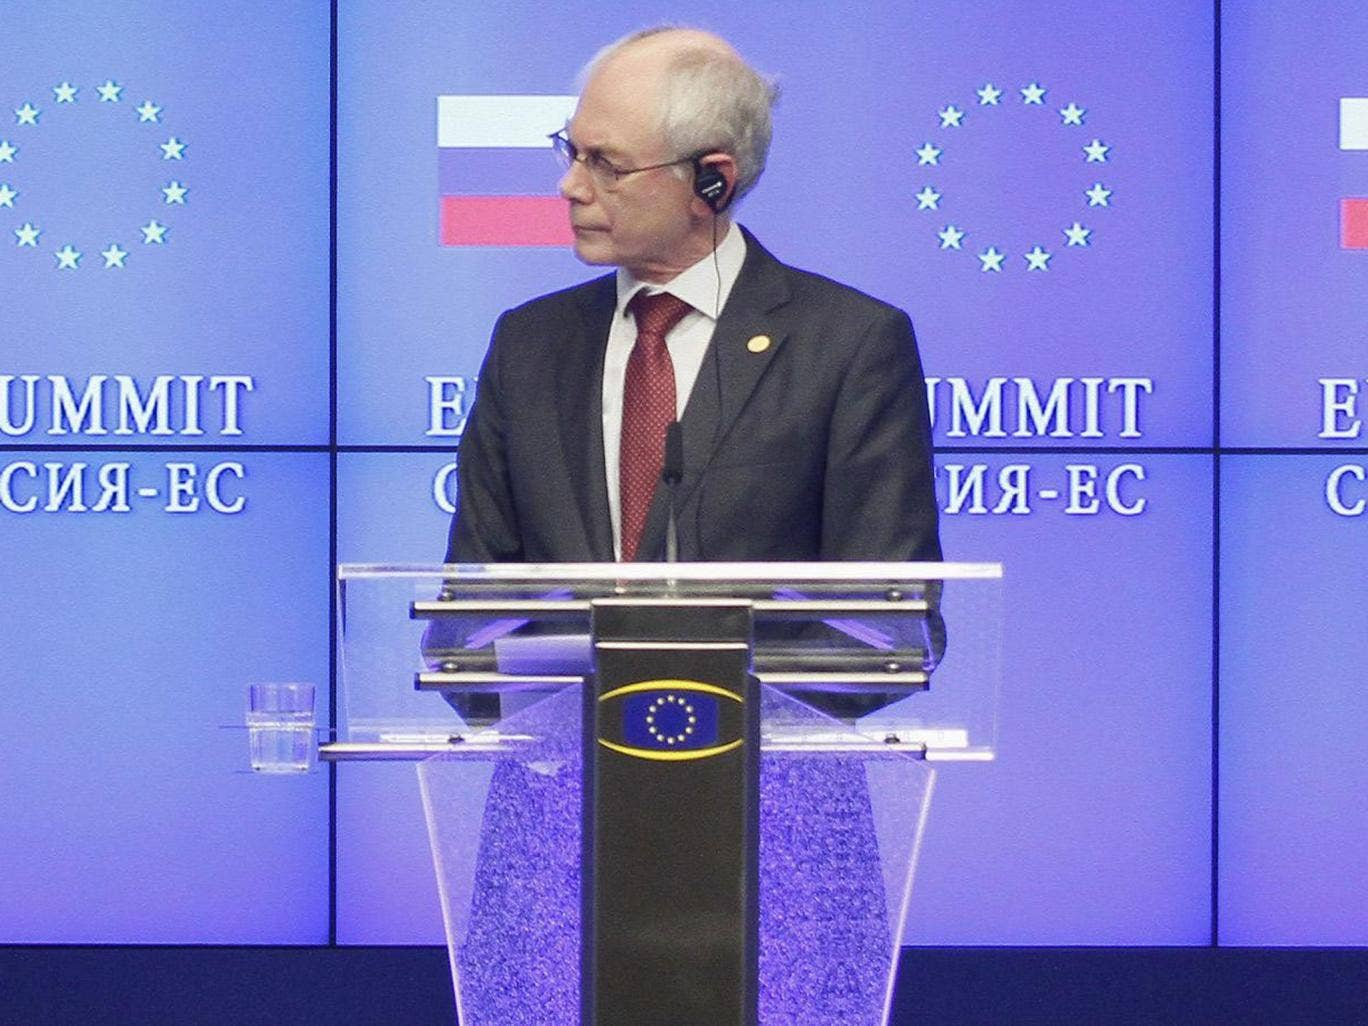 European Union president Herman Van Rompuy said the UK's exit from the union would see a 'friend walk off into the desert'